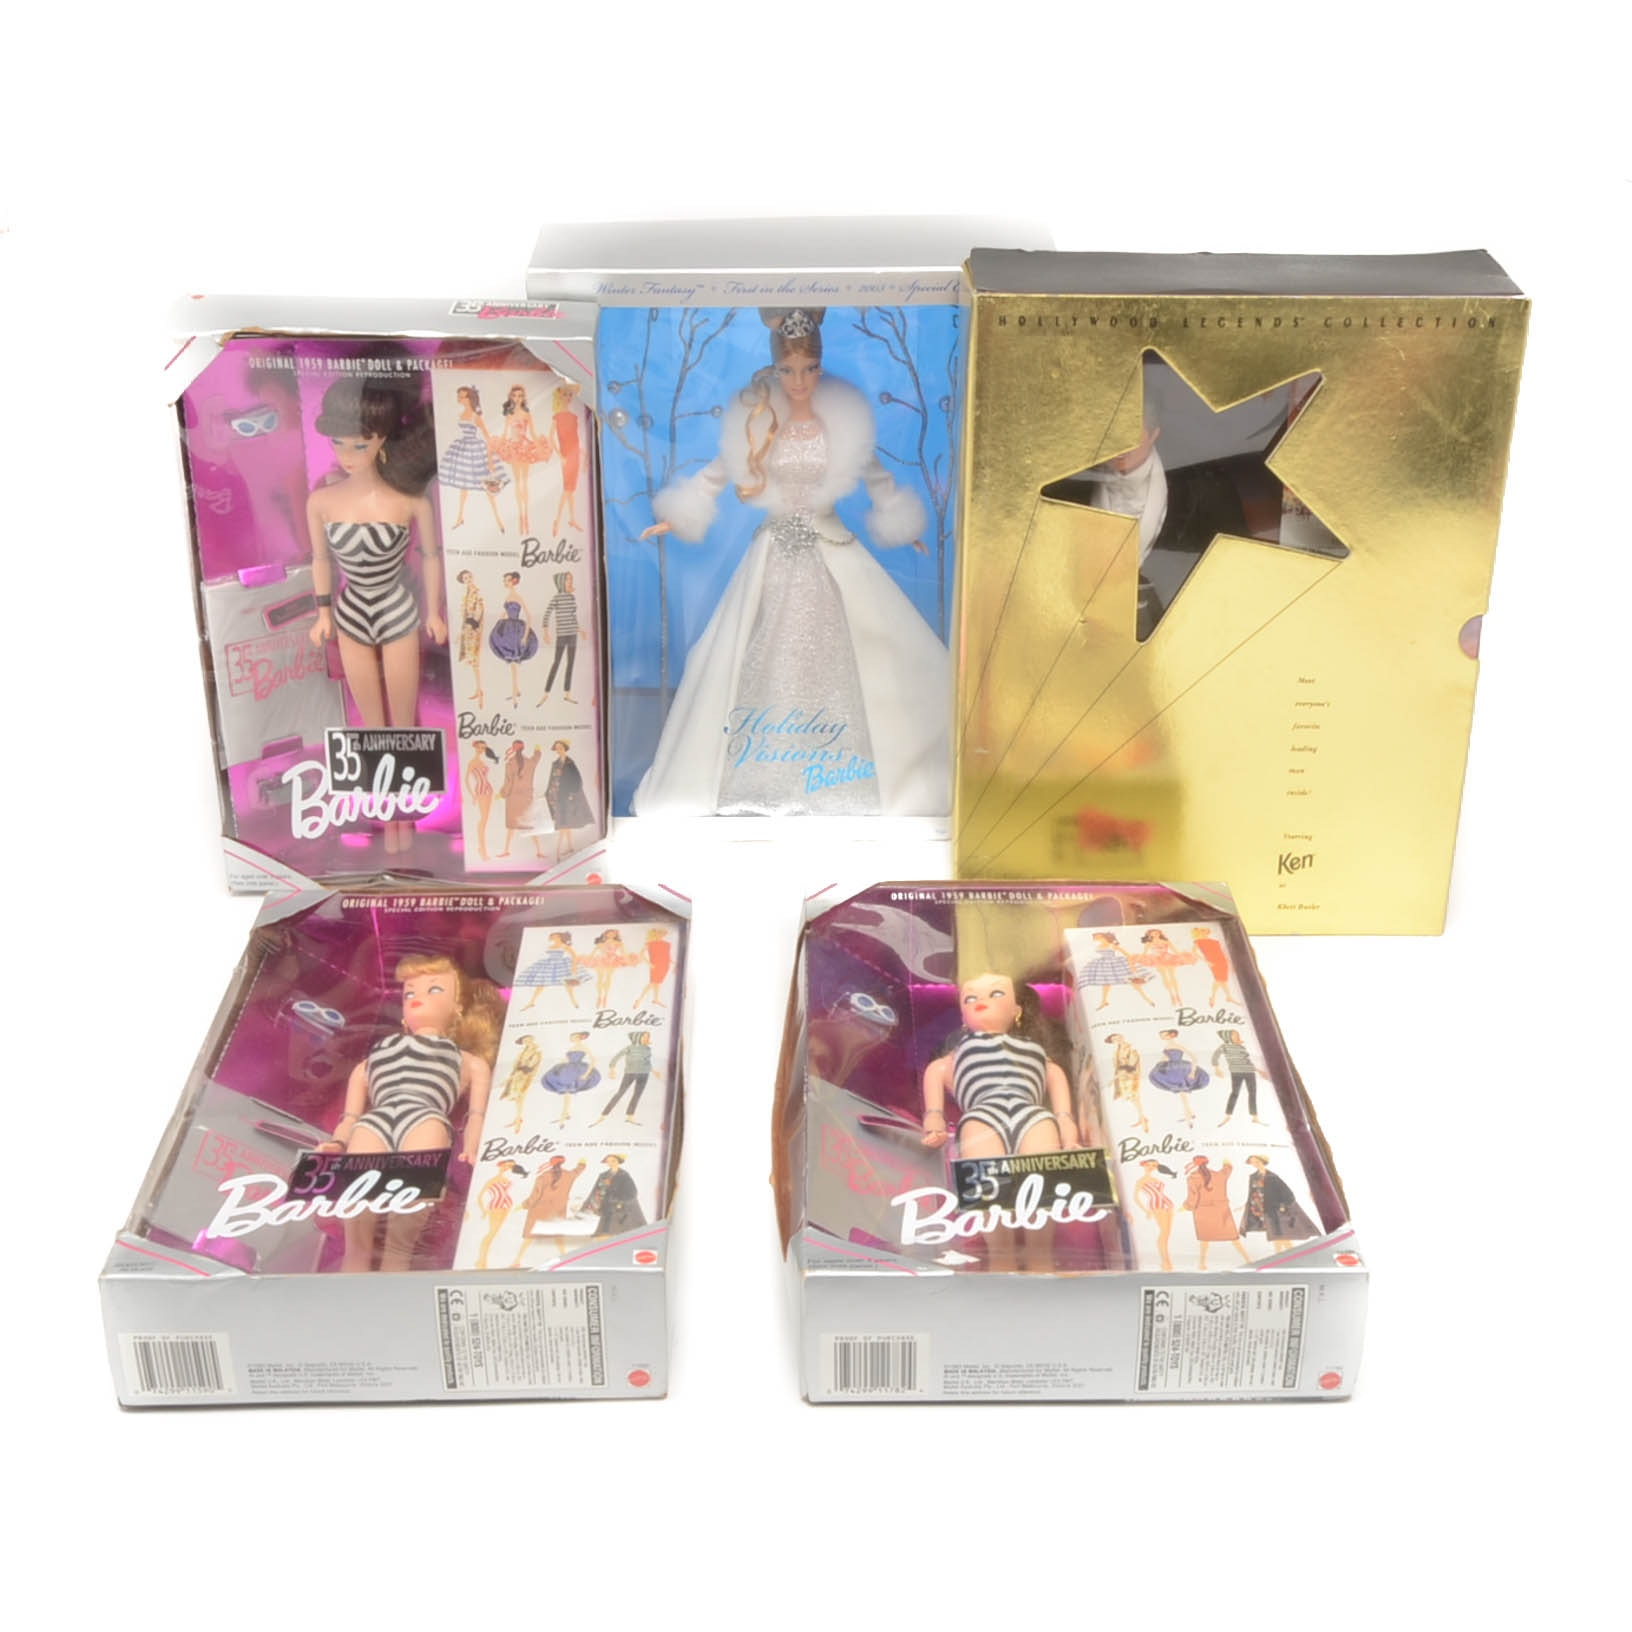 Five Barbie and Ken Boxed Dolls